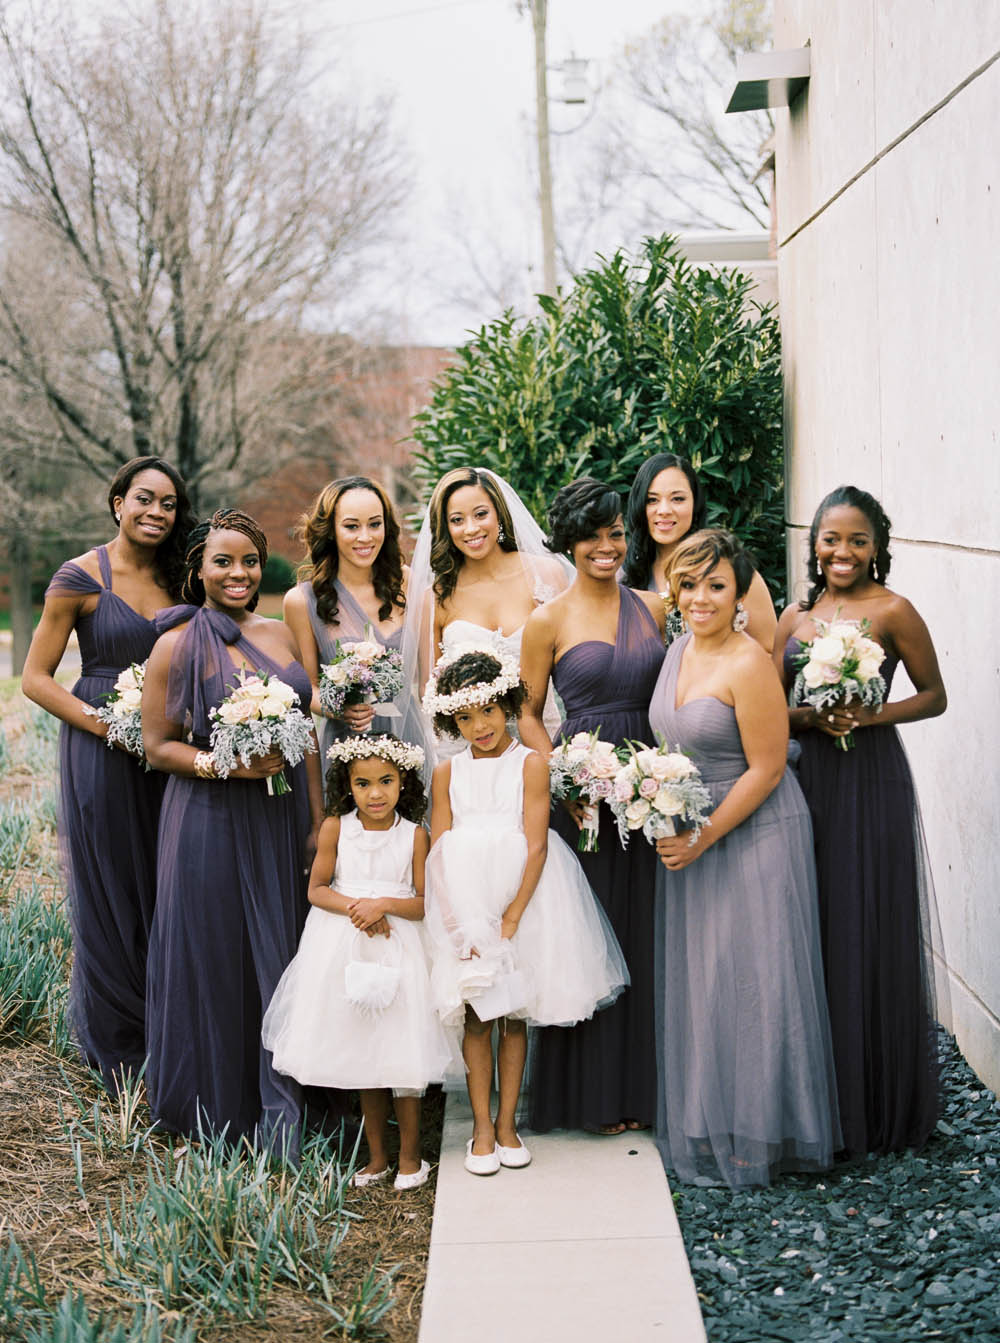 nashville ruby film documentary wedding photographer heartfelt real moments african american wedding munalachi bride ©2016abigailbobophotography-30.jpg